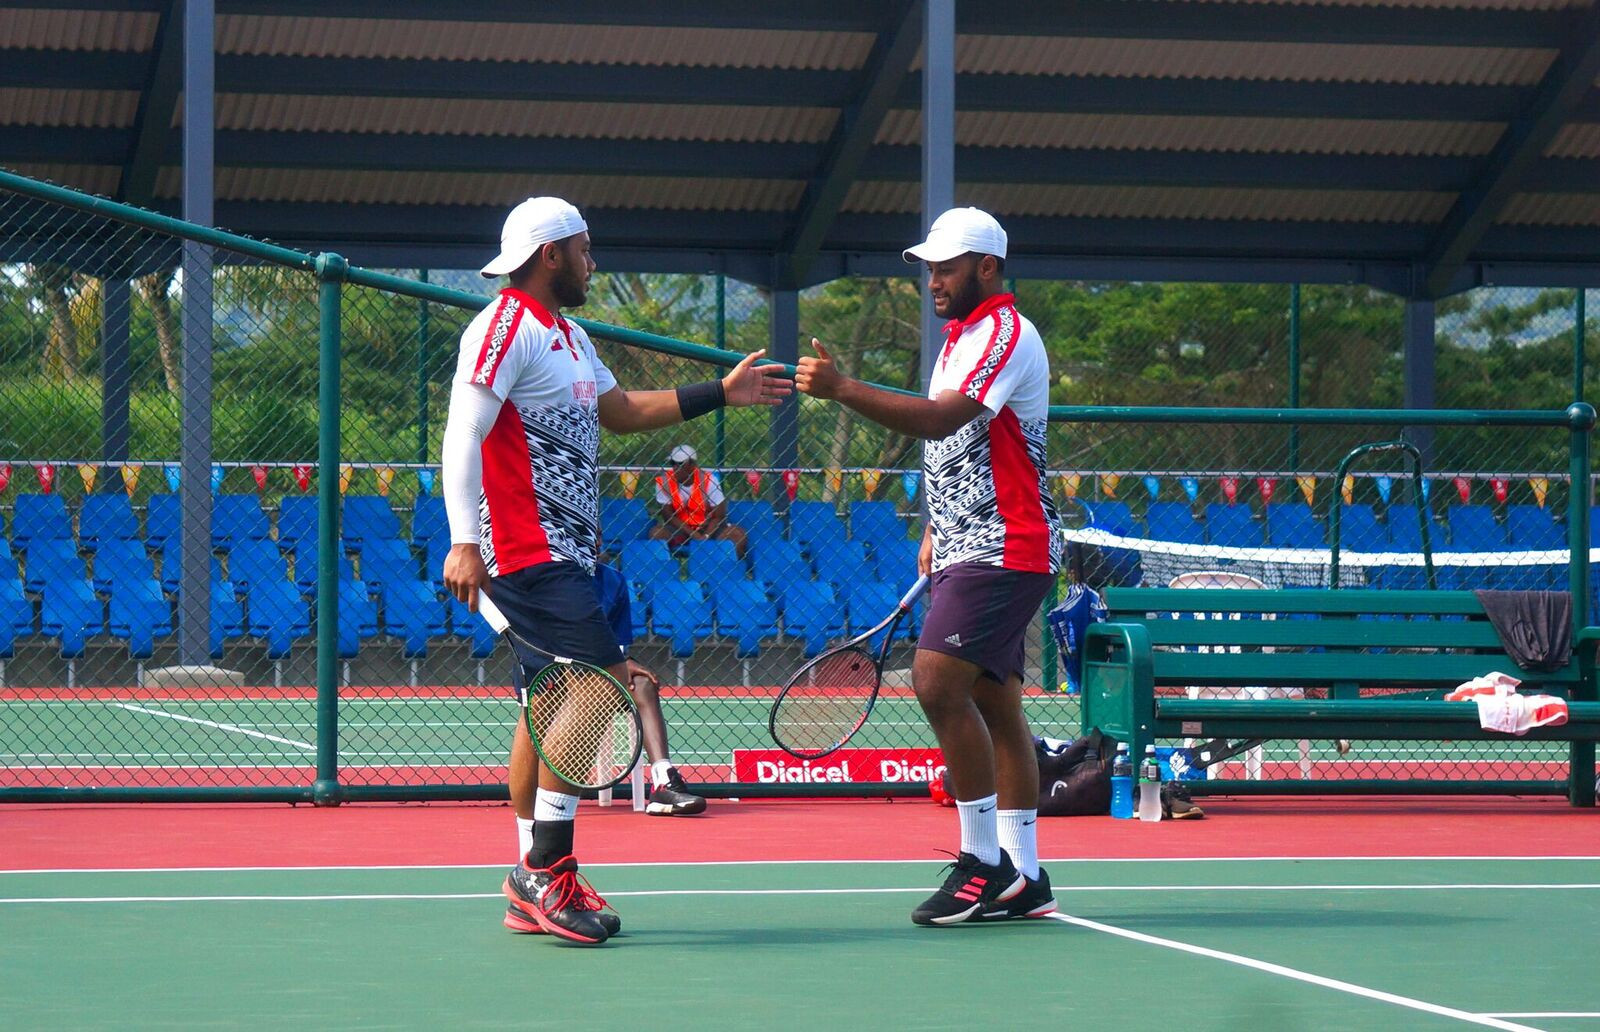 Tonga earned a gold medal in the men's doubles tennis ©Games News Service